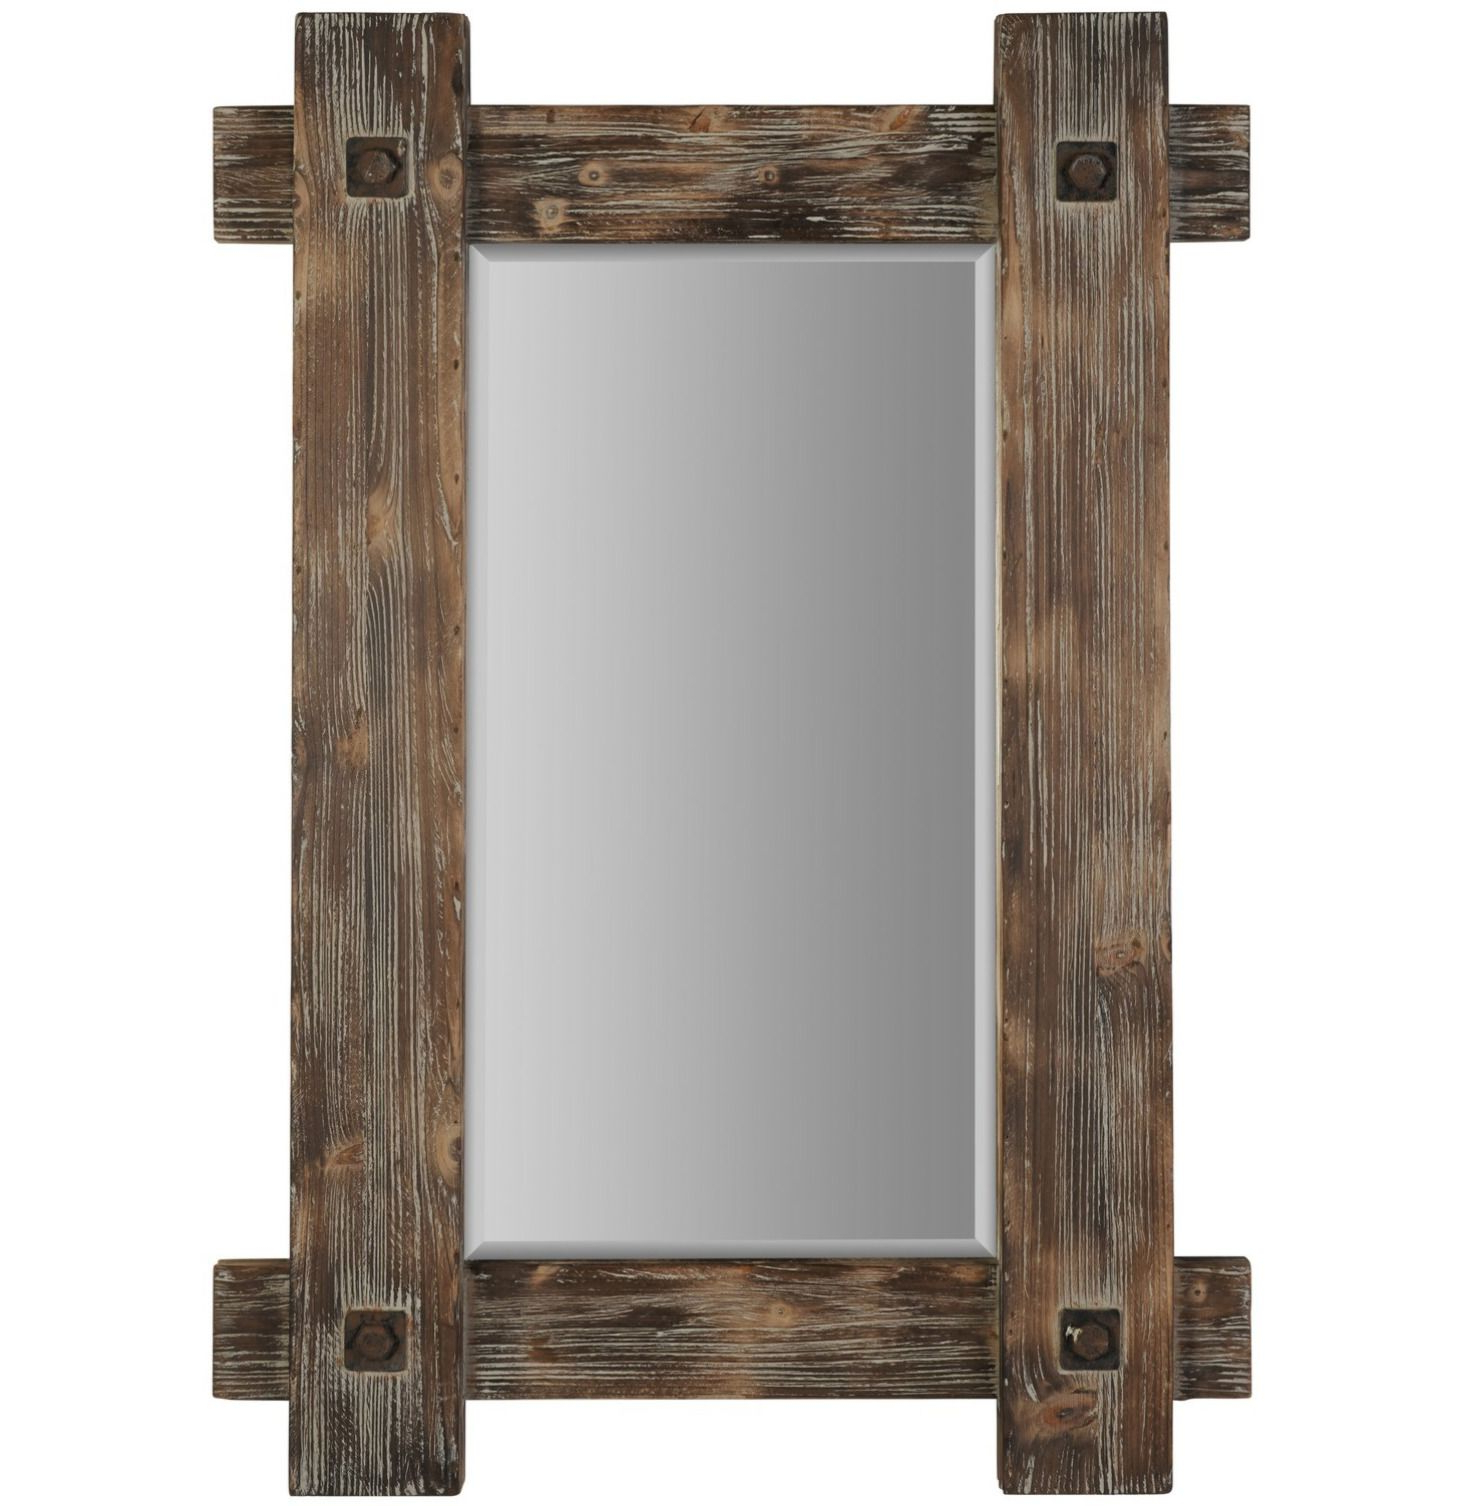 Coastal Wall Mirrors Within 2020 Nautical Brown Coastal Driftwood Wood Wall Mirror – Perfect For Any Room (View 4 of 20)